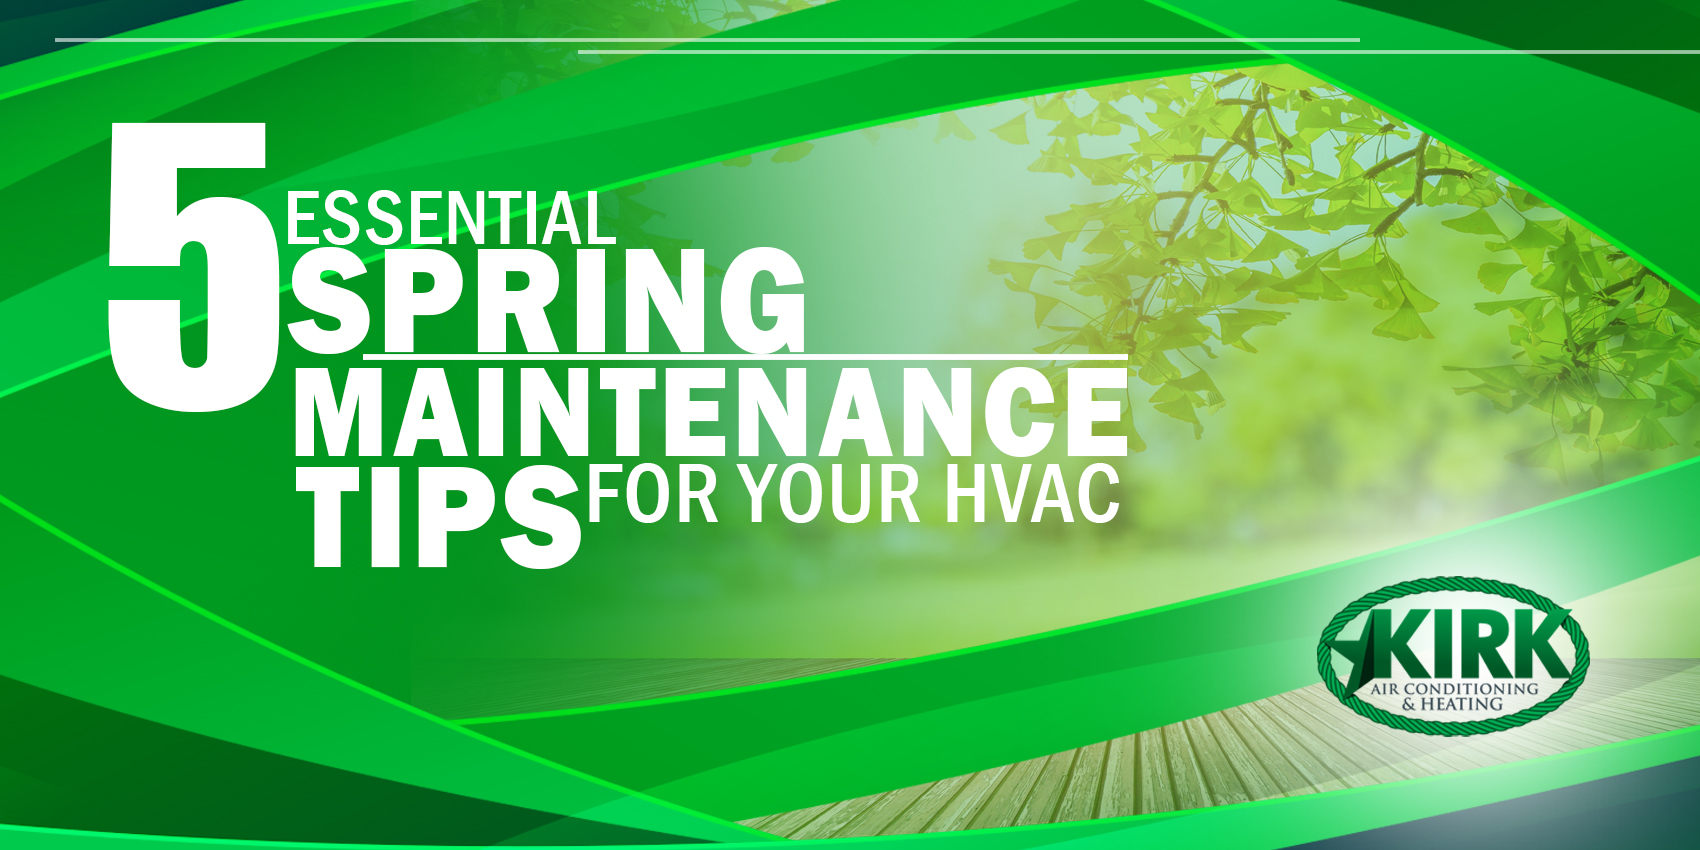 5 Essential Spring Maintenance Tips for Your HVAC